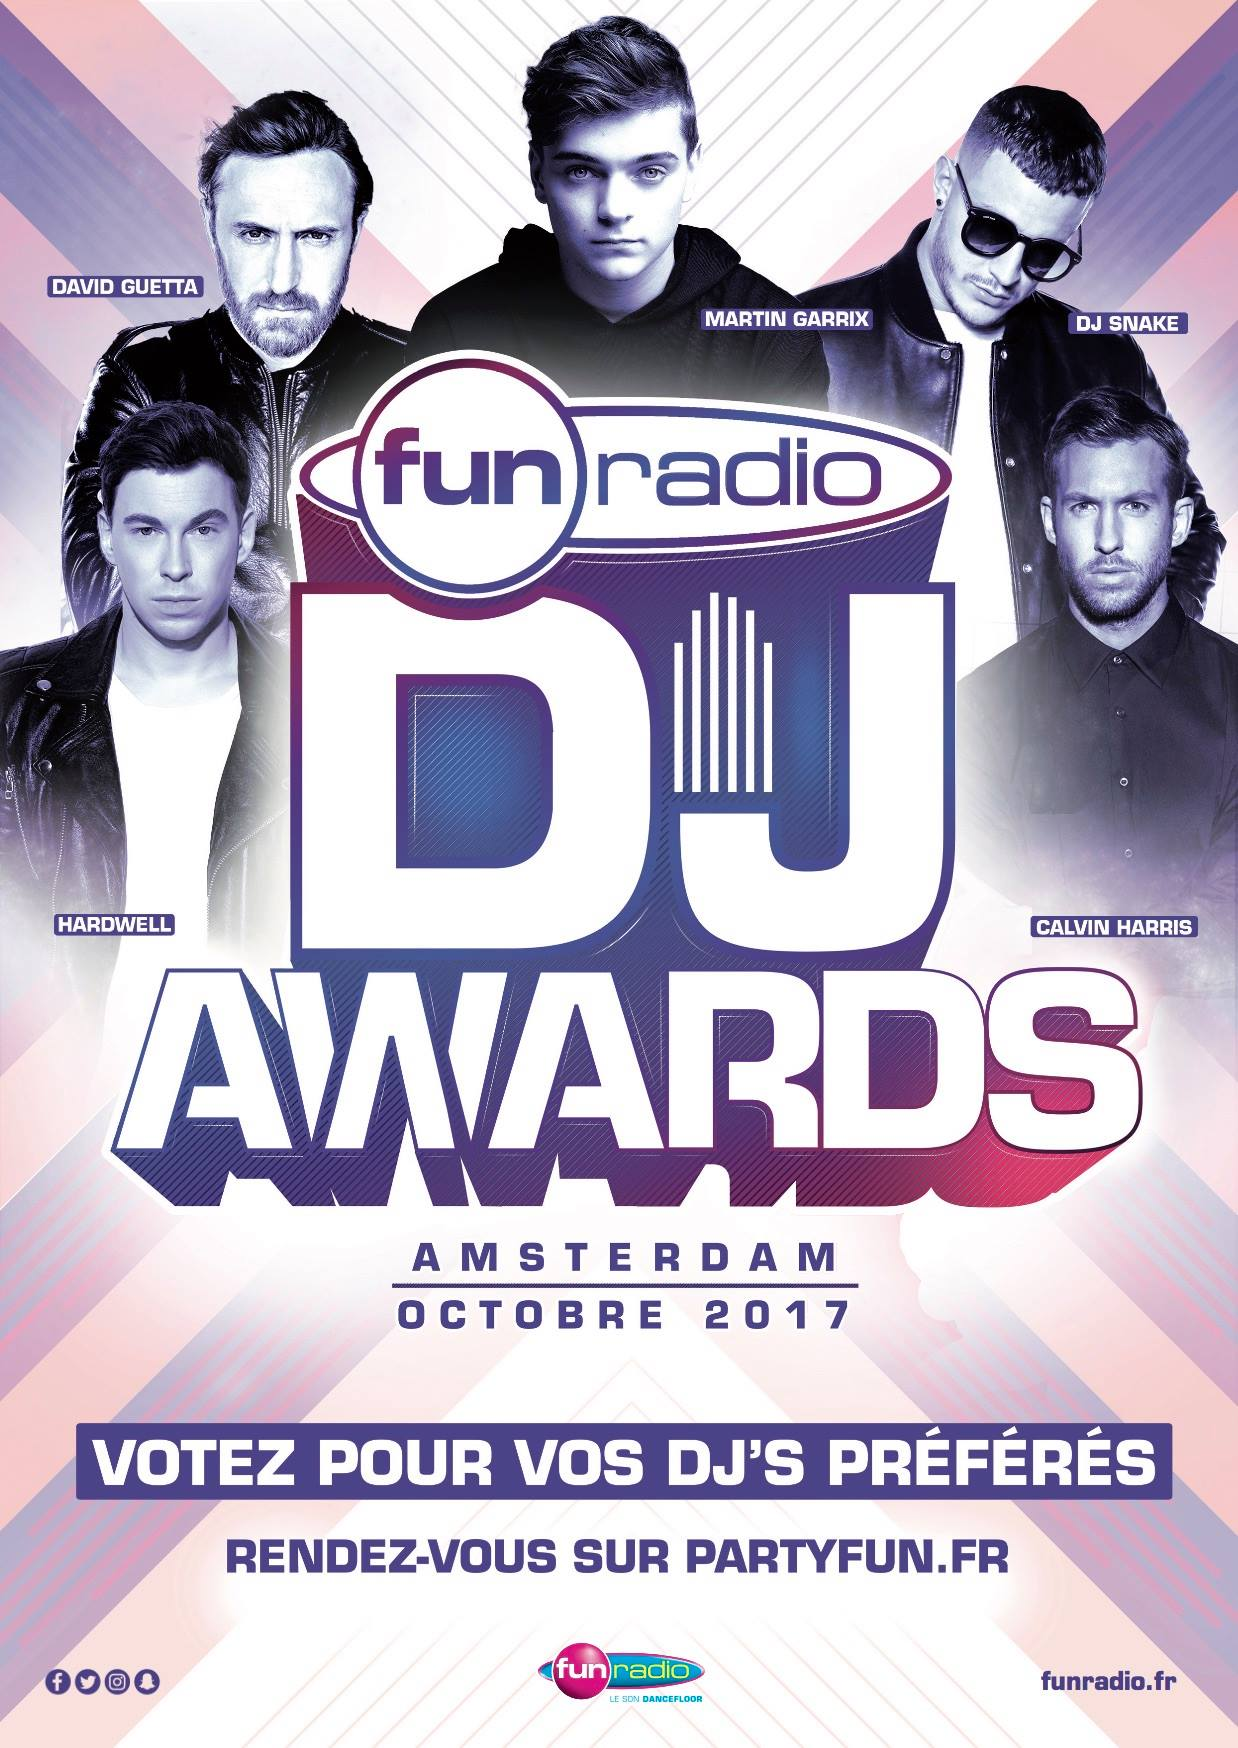 Dernier jour pour voter (pour moi ��) au #FunDJAwards https://t.co/VIRjlgdCRq https://t.co/1yfyHchaVn